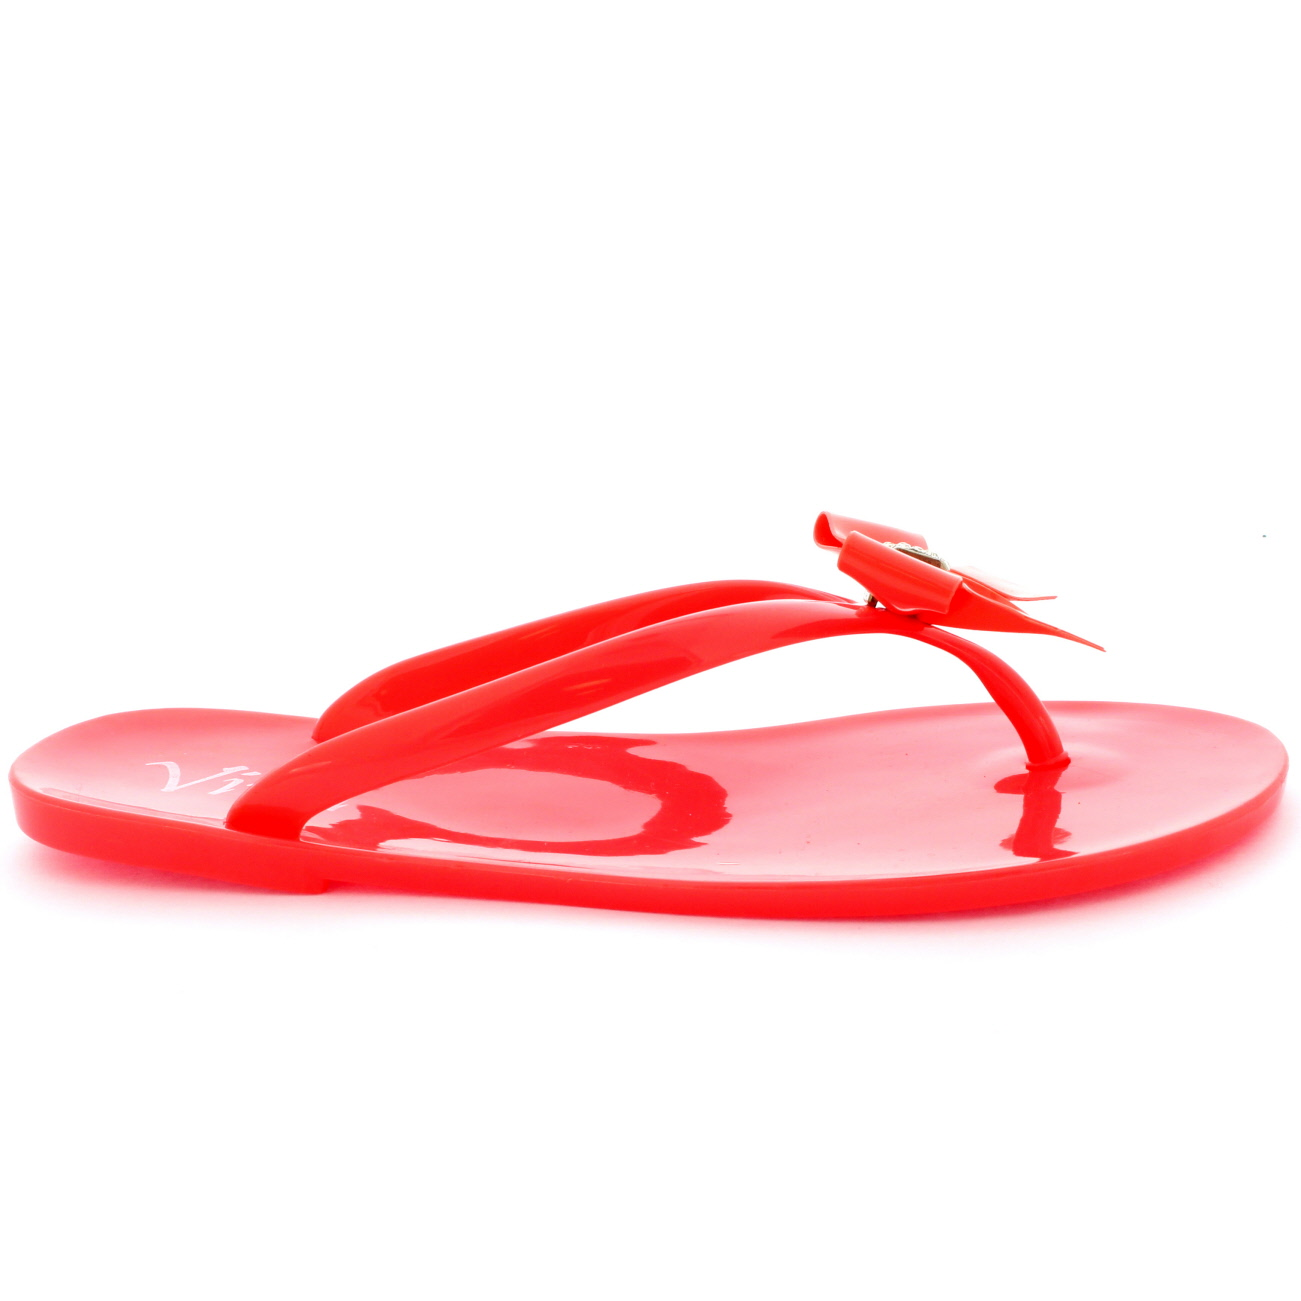 5c9e7f2f8c62eb Womens Summer Holiday Slip On Beach Shoes Bow Jelly Flip Flops ...